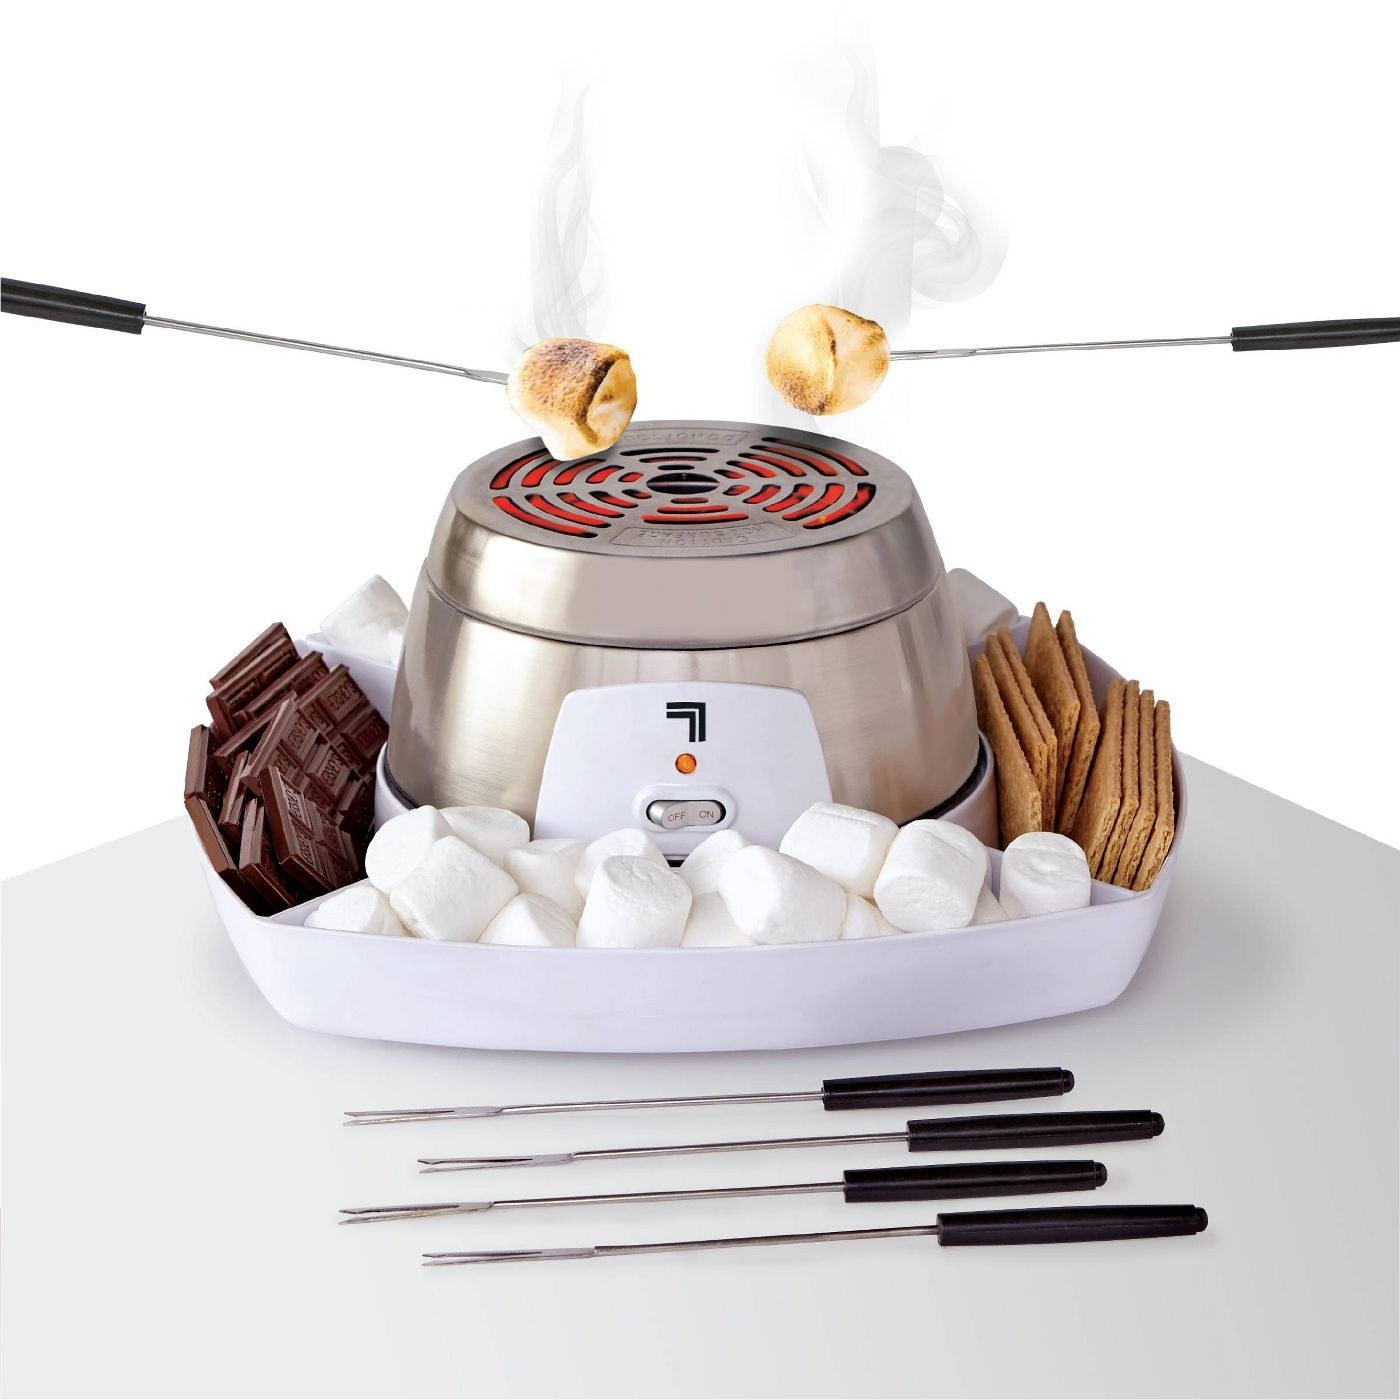 The electric S'mores maker